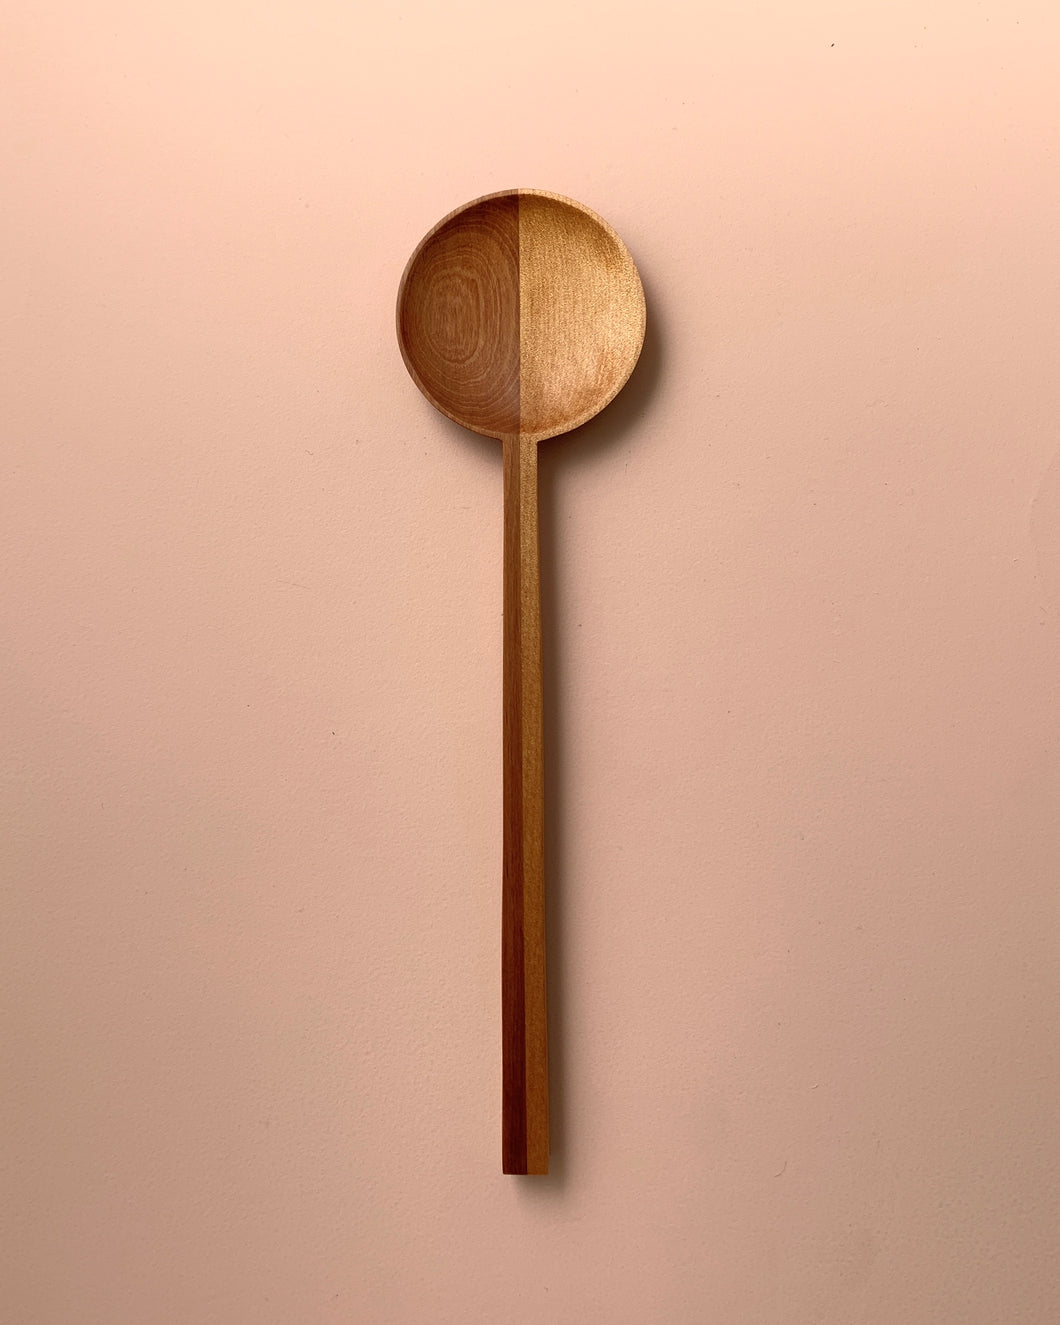 HALF AND HALF ROUND SPOON